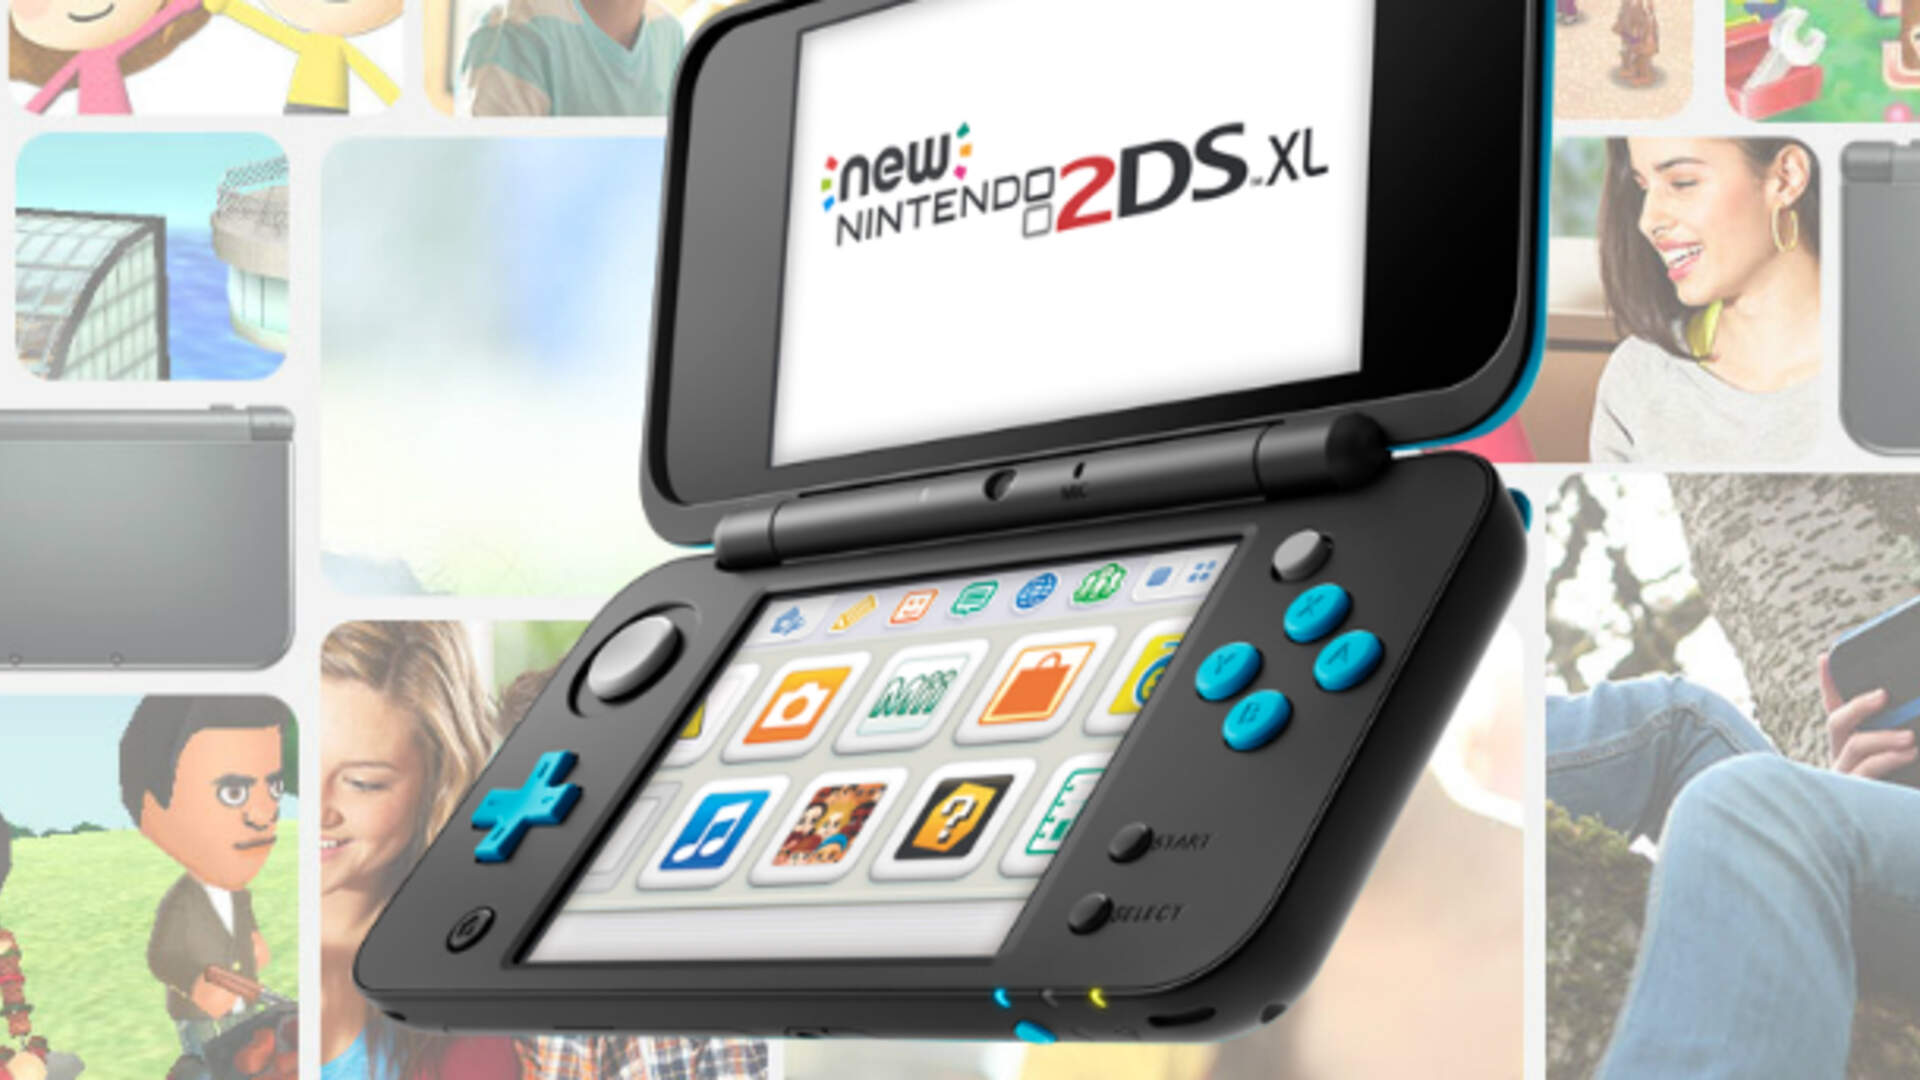 New Nintendo 2DS XL Is a Superb Swan Song for the System